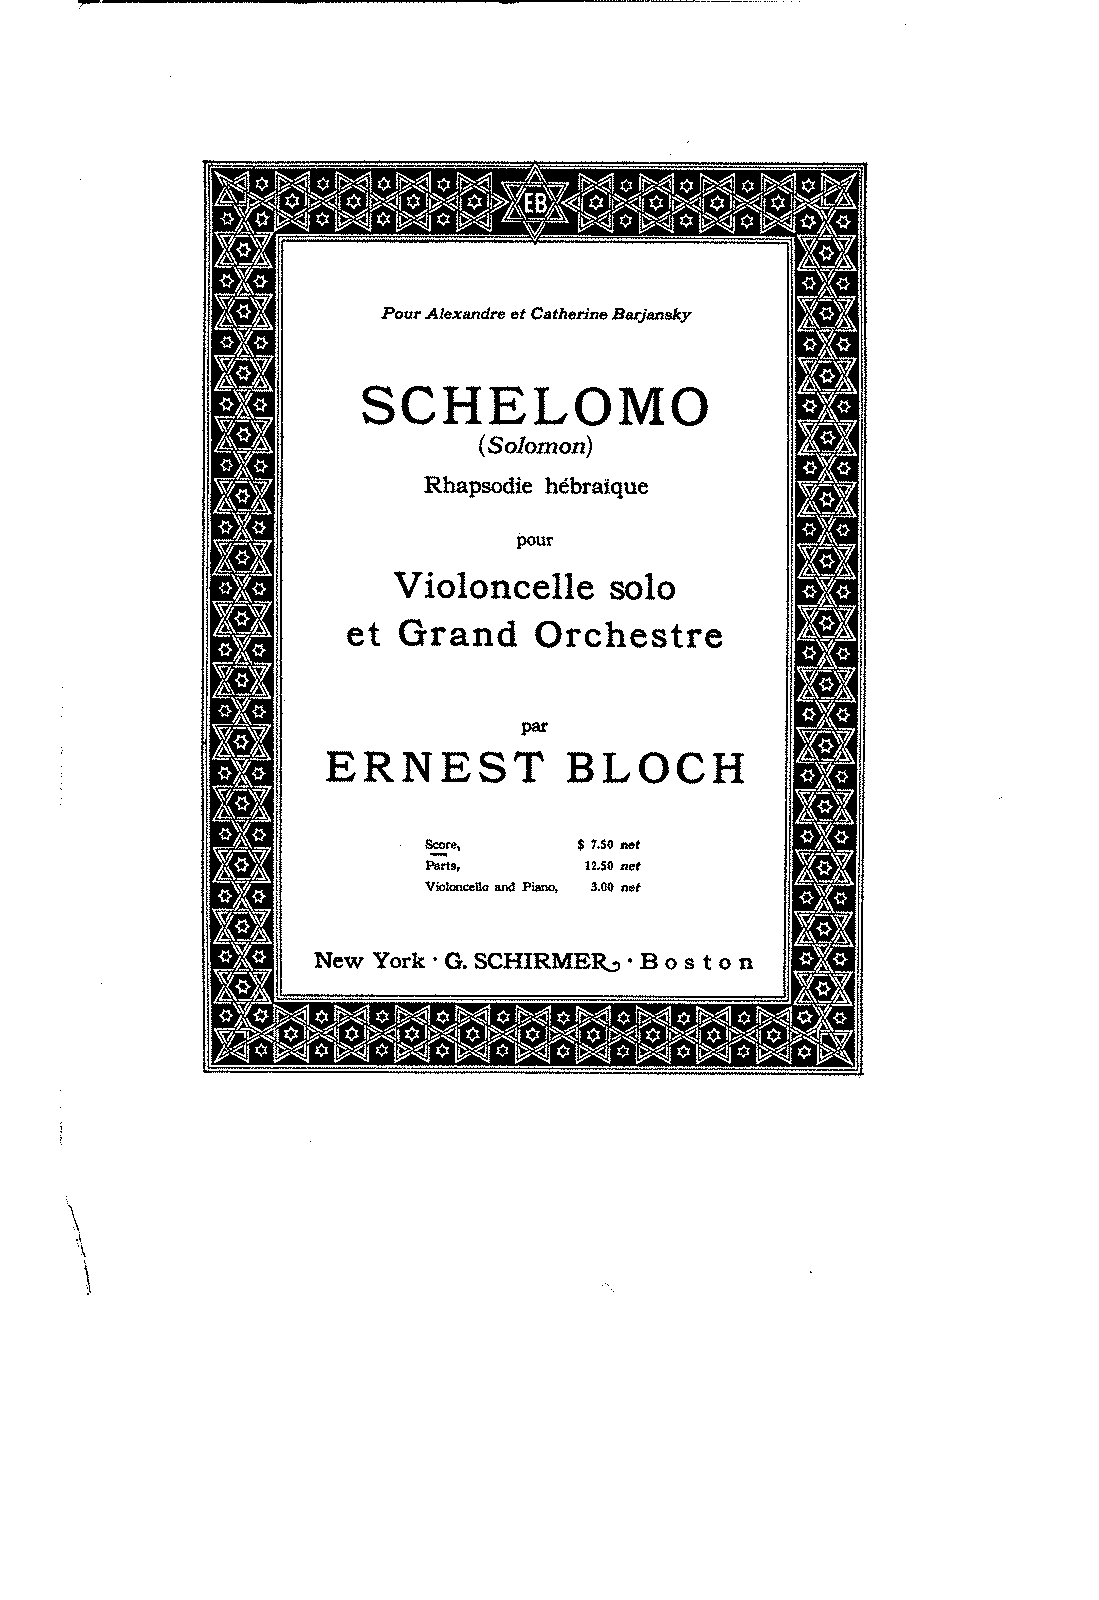 PMLP104826-Bloch - Schelomo (Solomon) Rhapsodie Hebraique for Cello and Orchestra 1918 full score.pdf